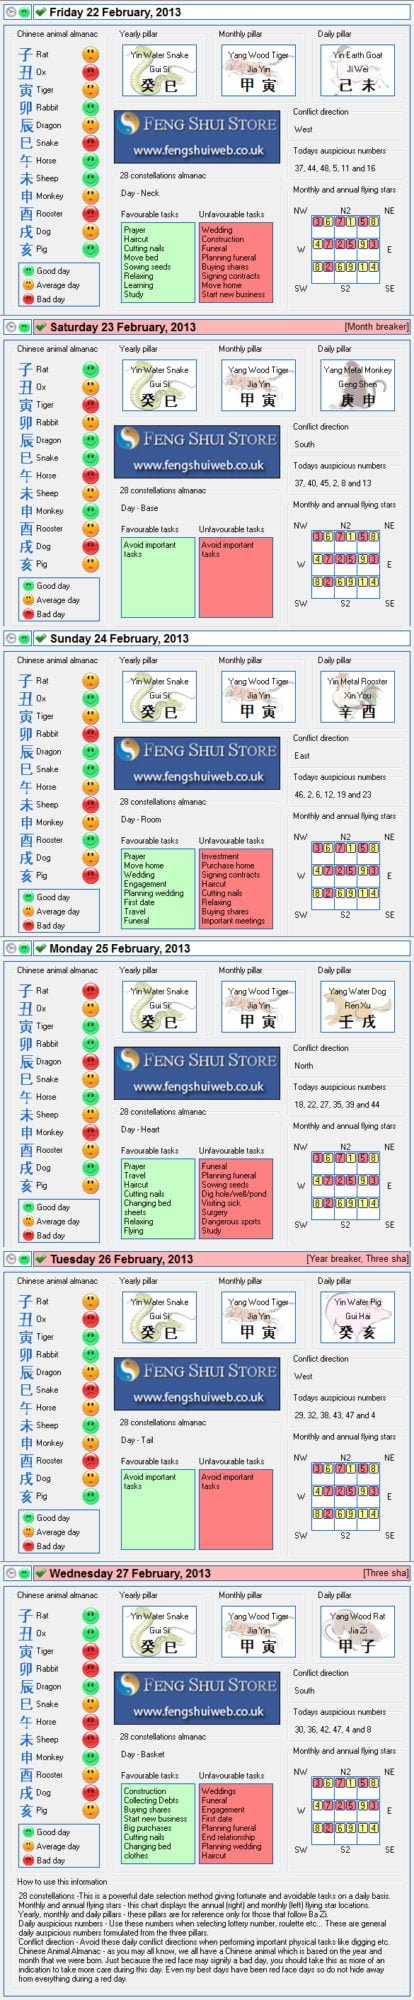 Tong Shu Almanac for Friday 22nd - Wednesday 27th February 2013